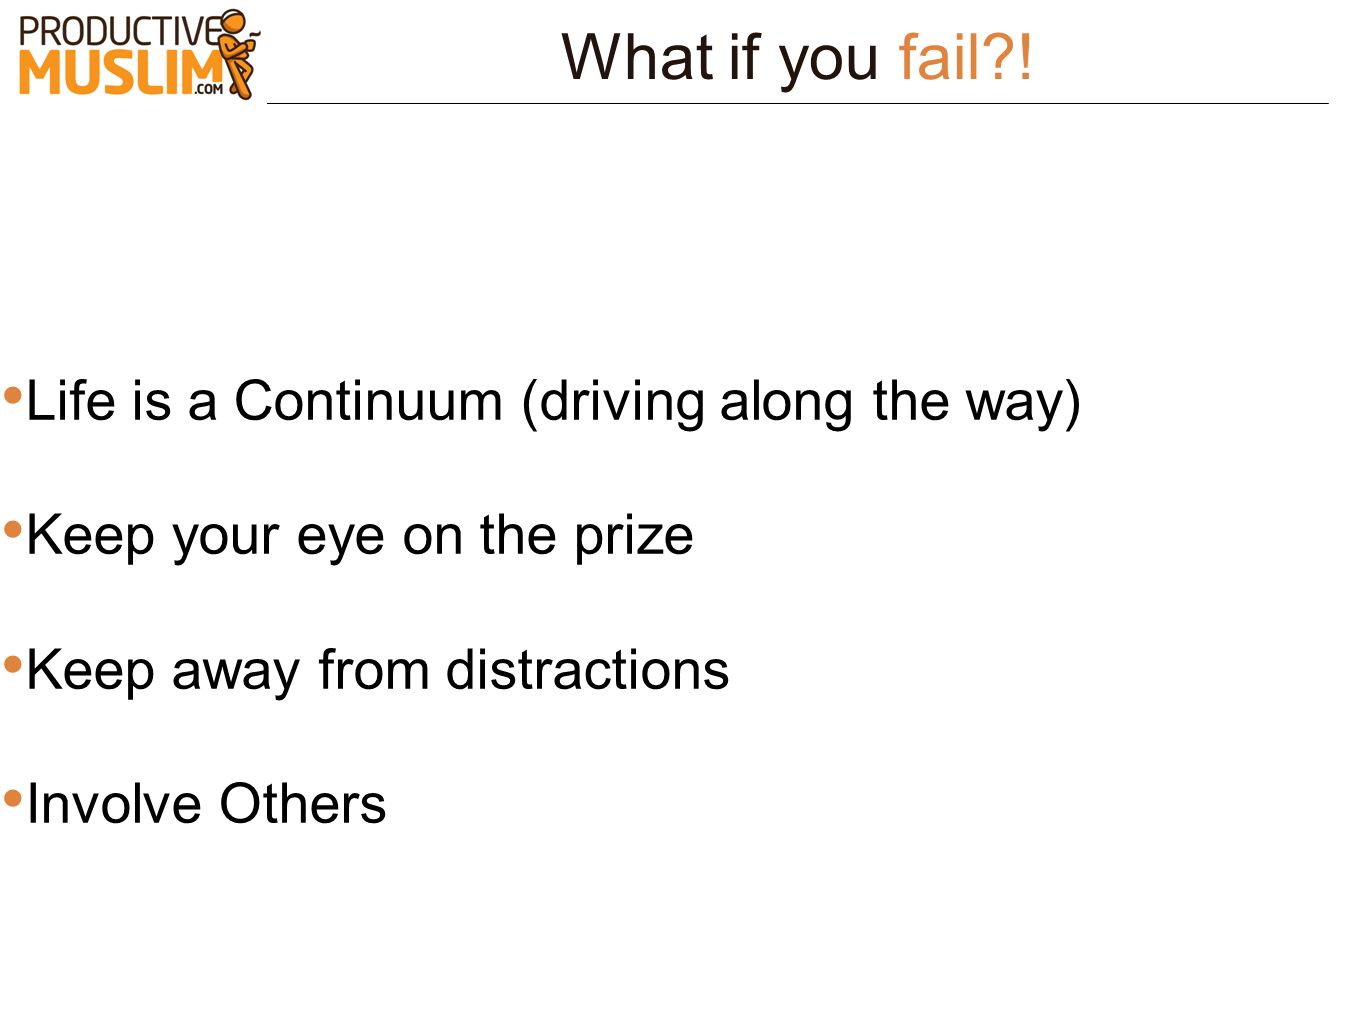 What if you fail?! Life is a Continuum (driving along the way) Keep your eye on the prize Keep away from distractions Involve Others